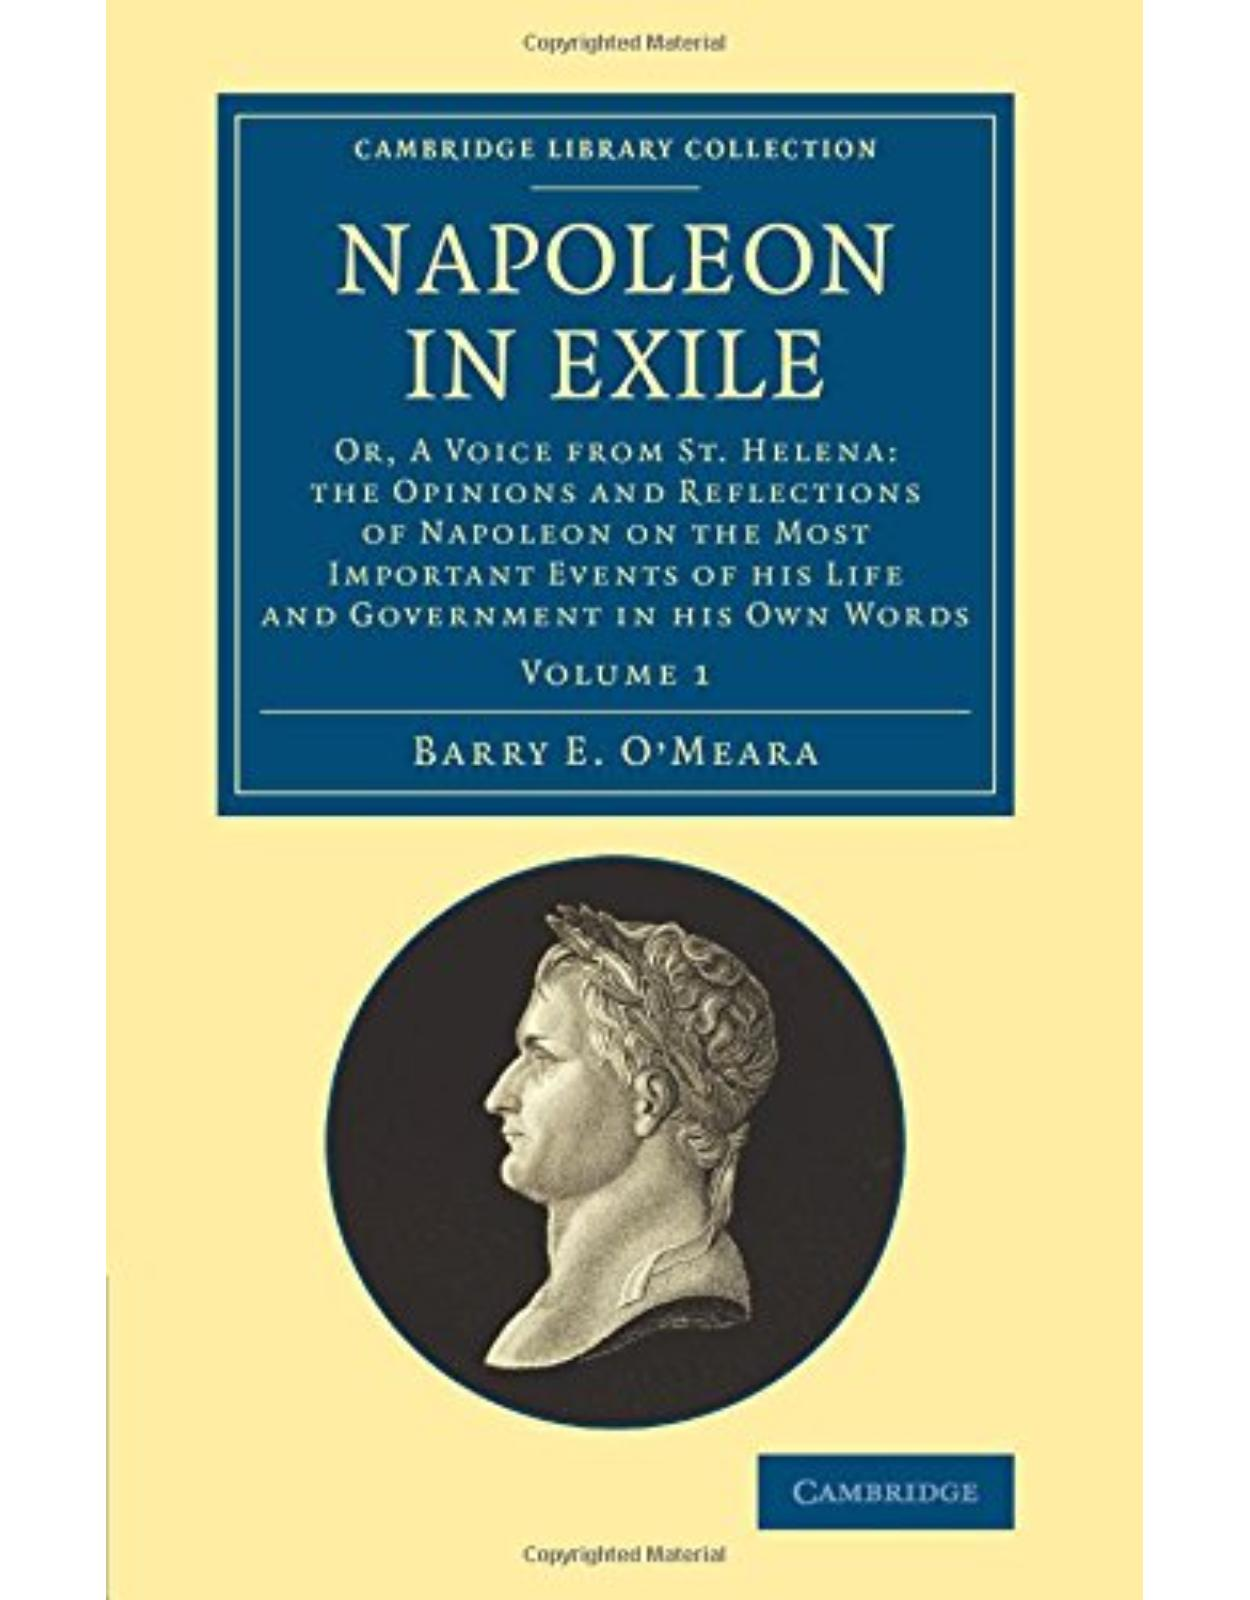 Napoleon in Exile 2 Volume Set: Napoleon in Exile: Or, A Voice from St. Helena: The Opinions and Reflections of Napoleon on the Most Important Events ... Collection - Naval and Military History)